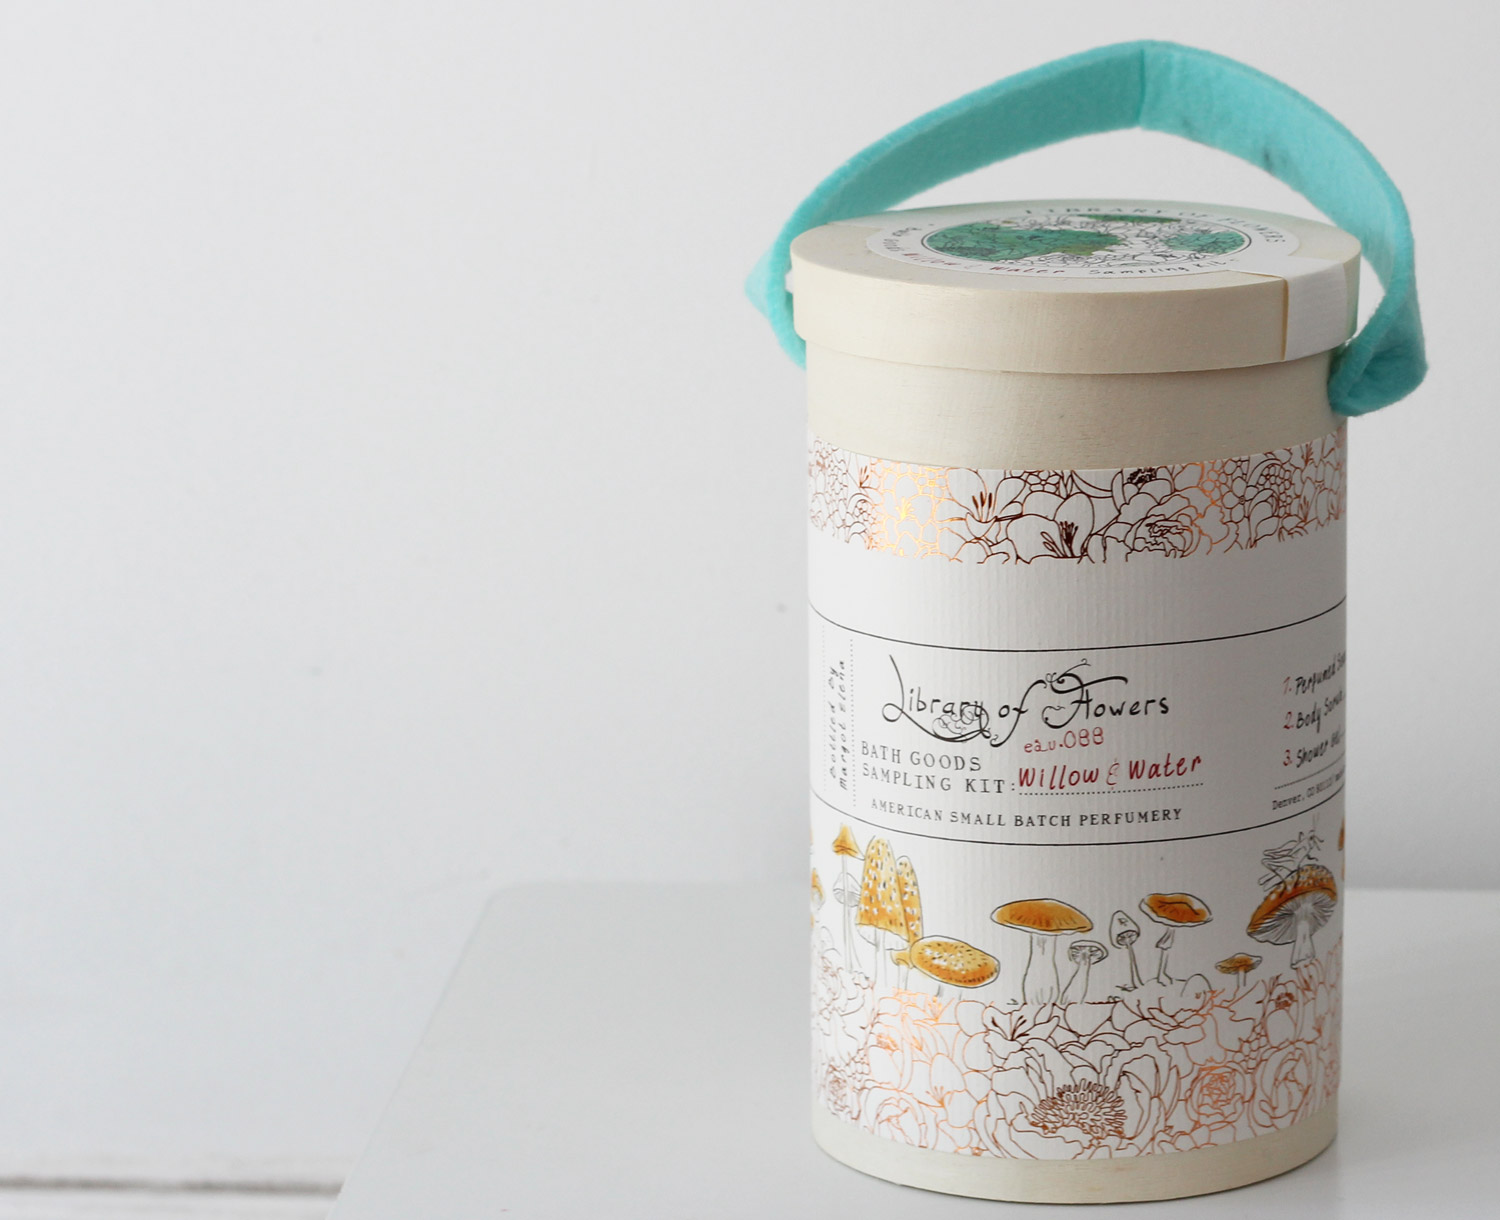 Library of Flowers Field Kit Willow and Water Review